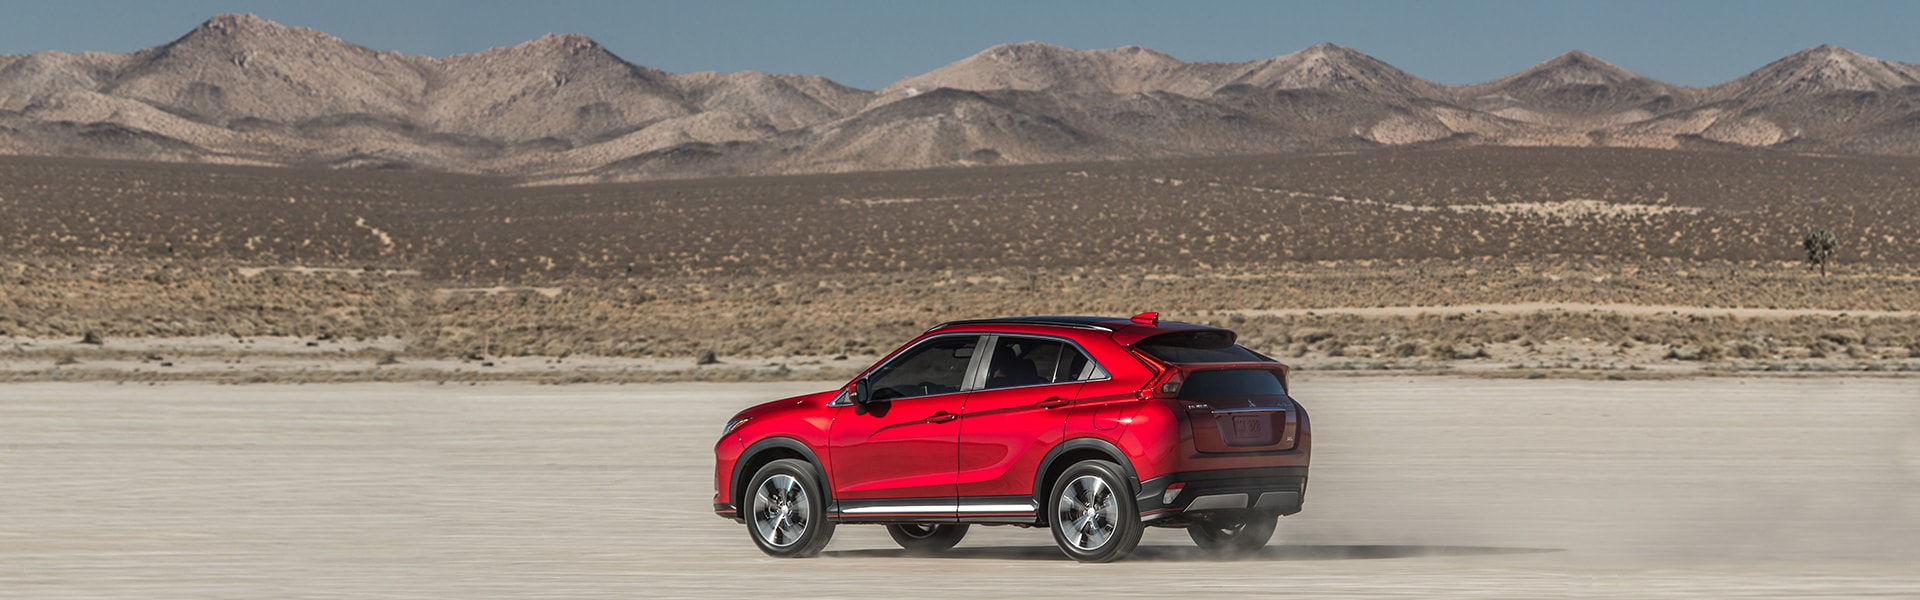 Rally Red Exterior 2018 Mitsubishi Eclipse Cross 02